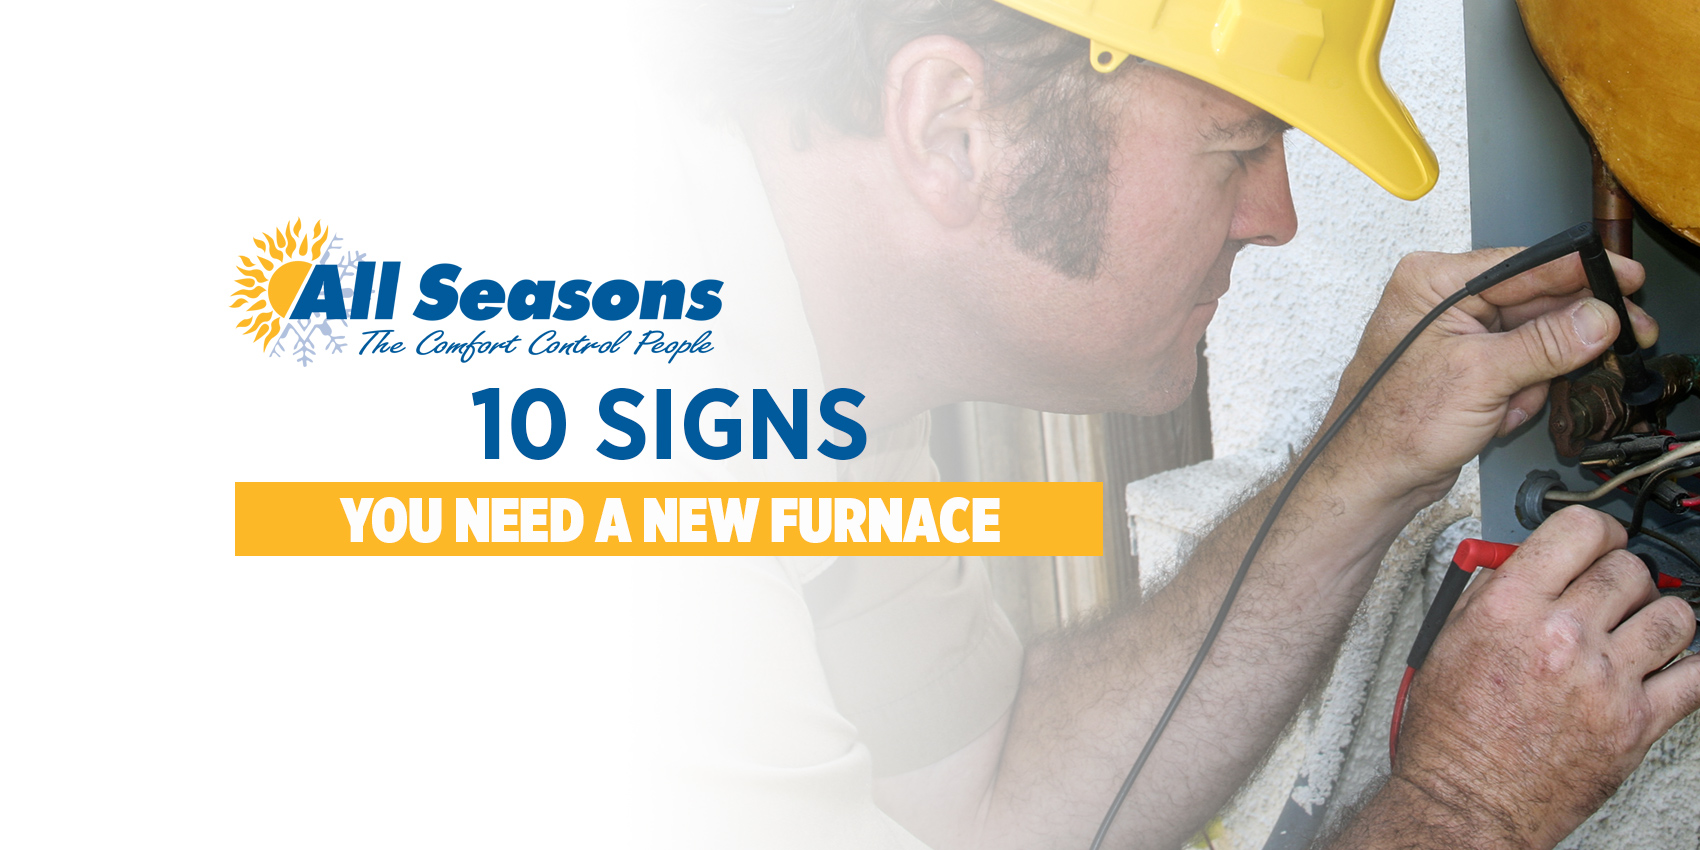 10 Signs You Need a New Furnace